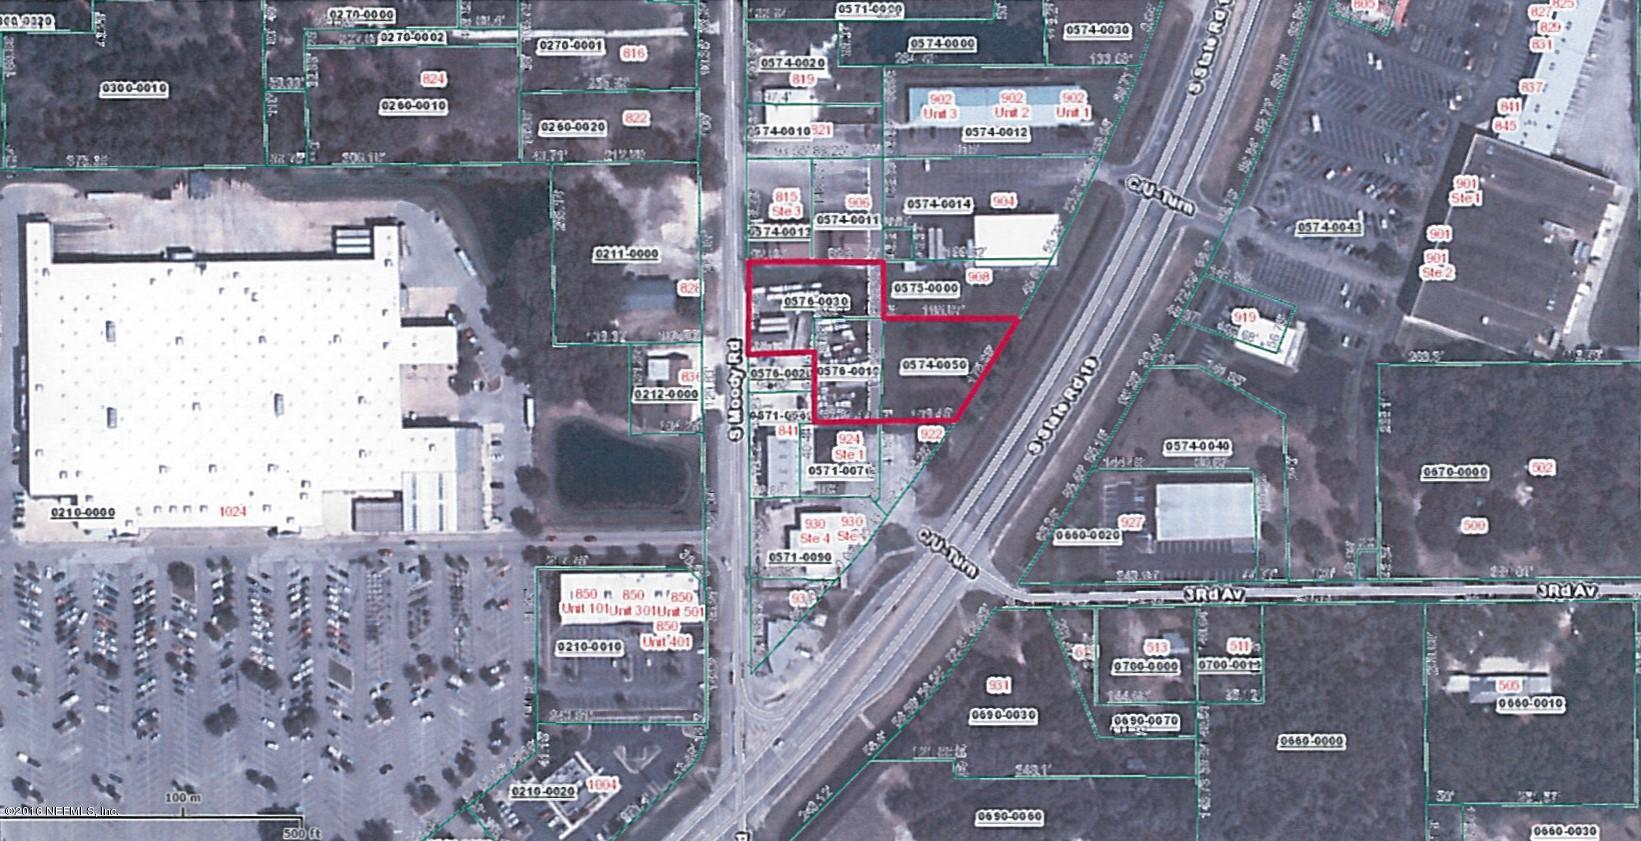 920 STATE ROAD 19, PALATKA, FLORIDA 32177-9394, ,Commercial,For sale,STATE ROAD 19,227104